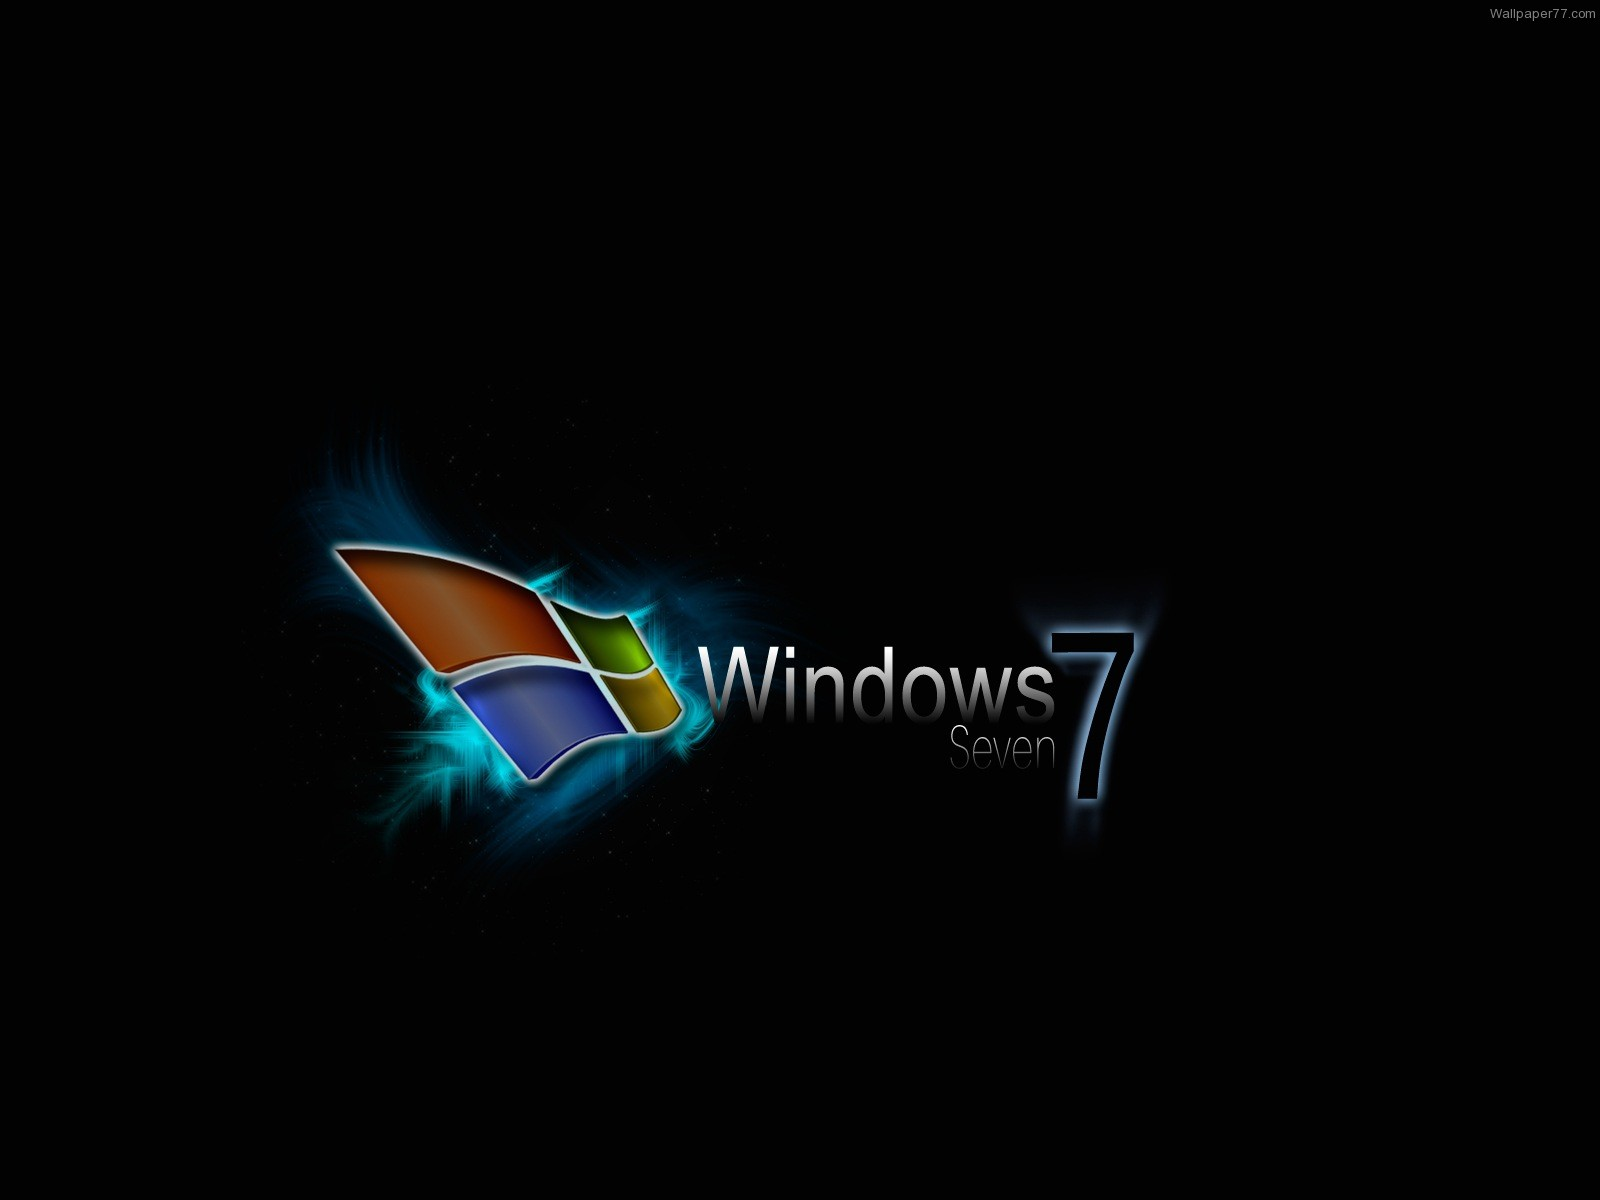 animated wallpaper for windows 7 animated wallpaper for windows 7 1600x1200